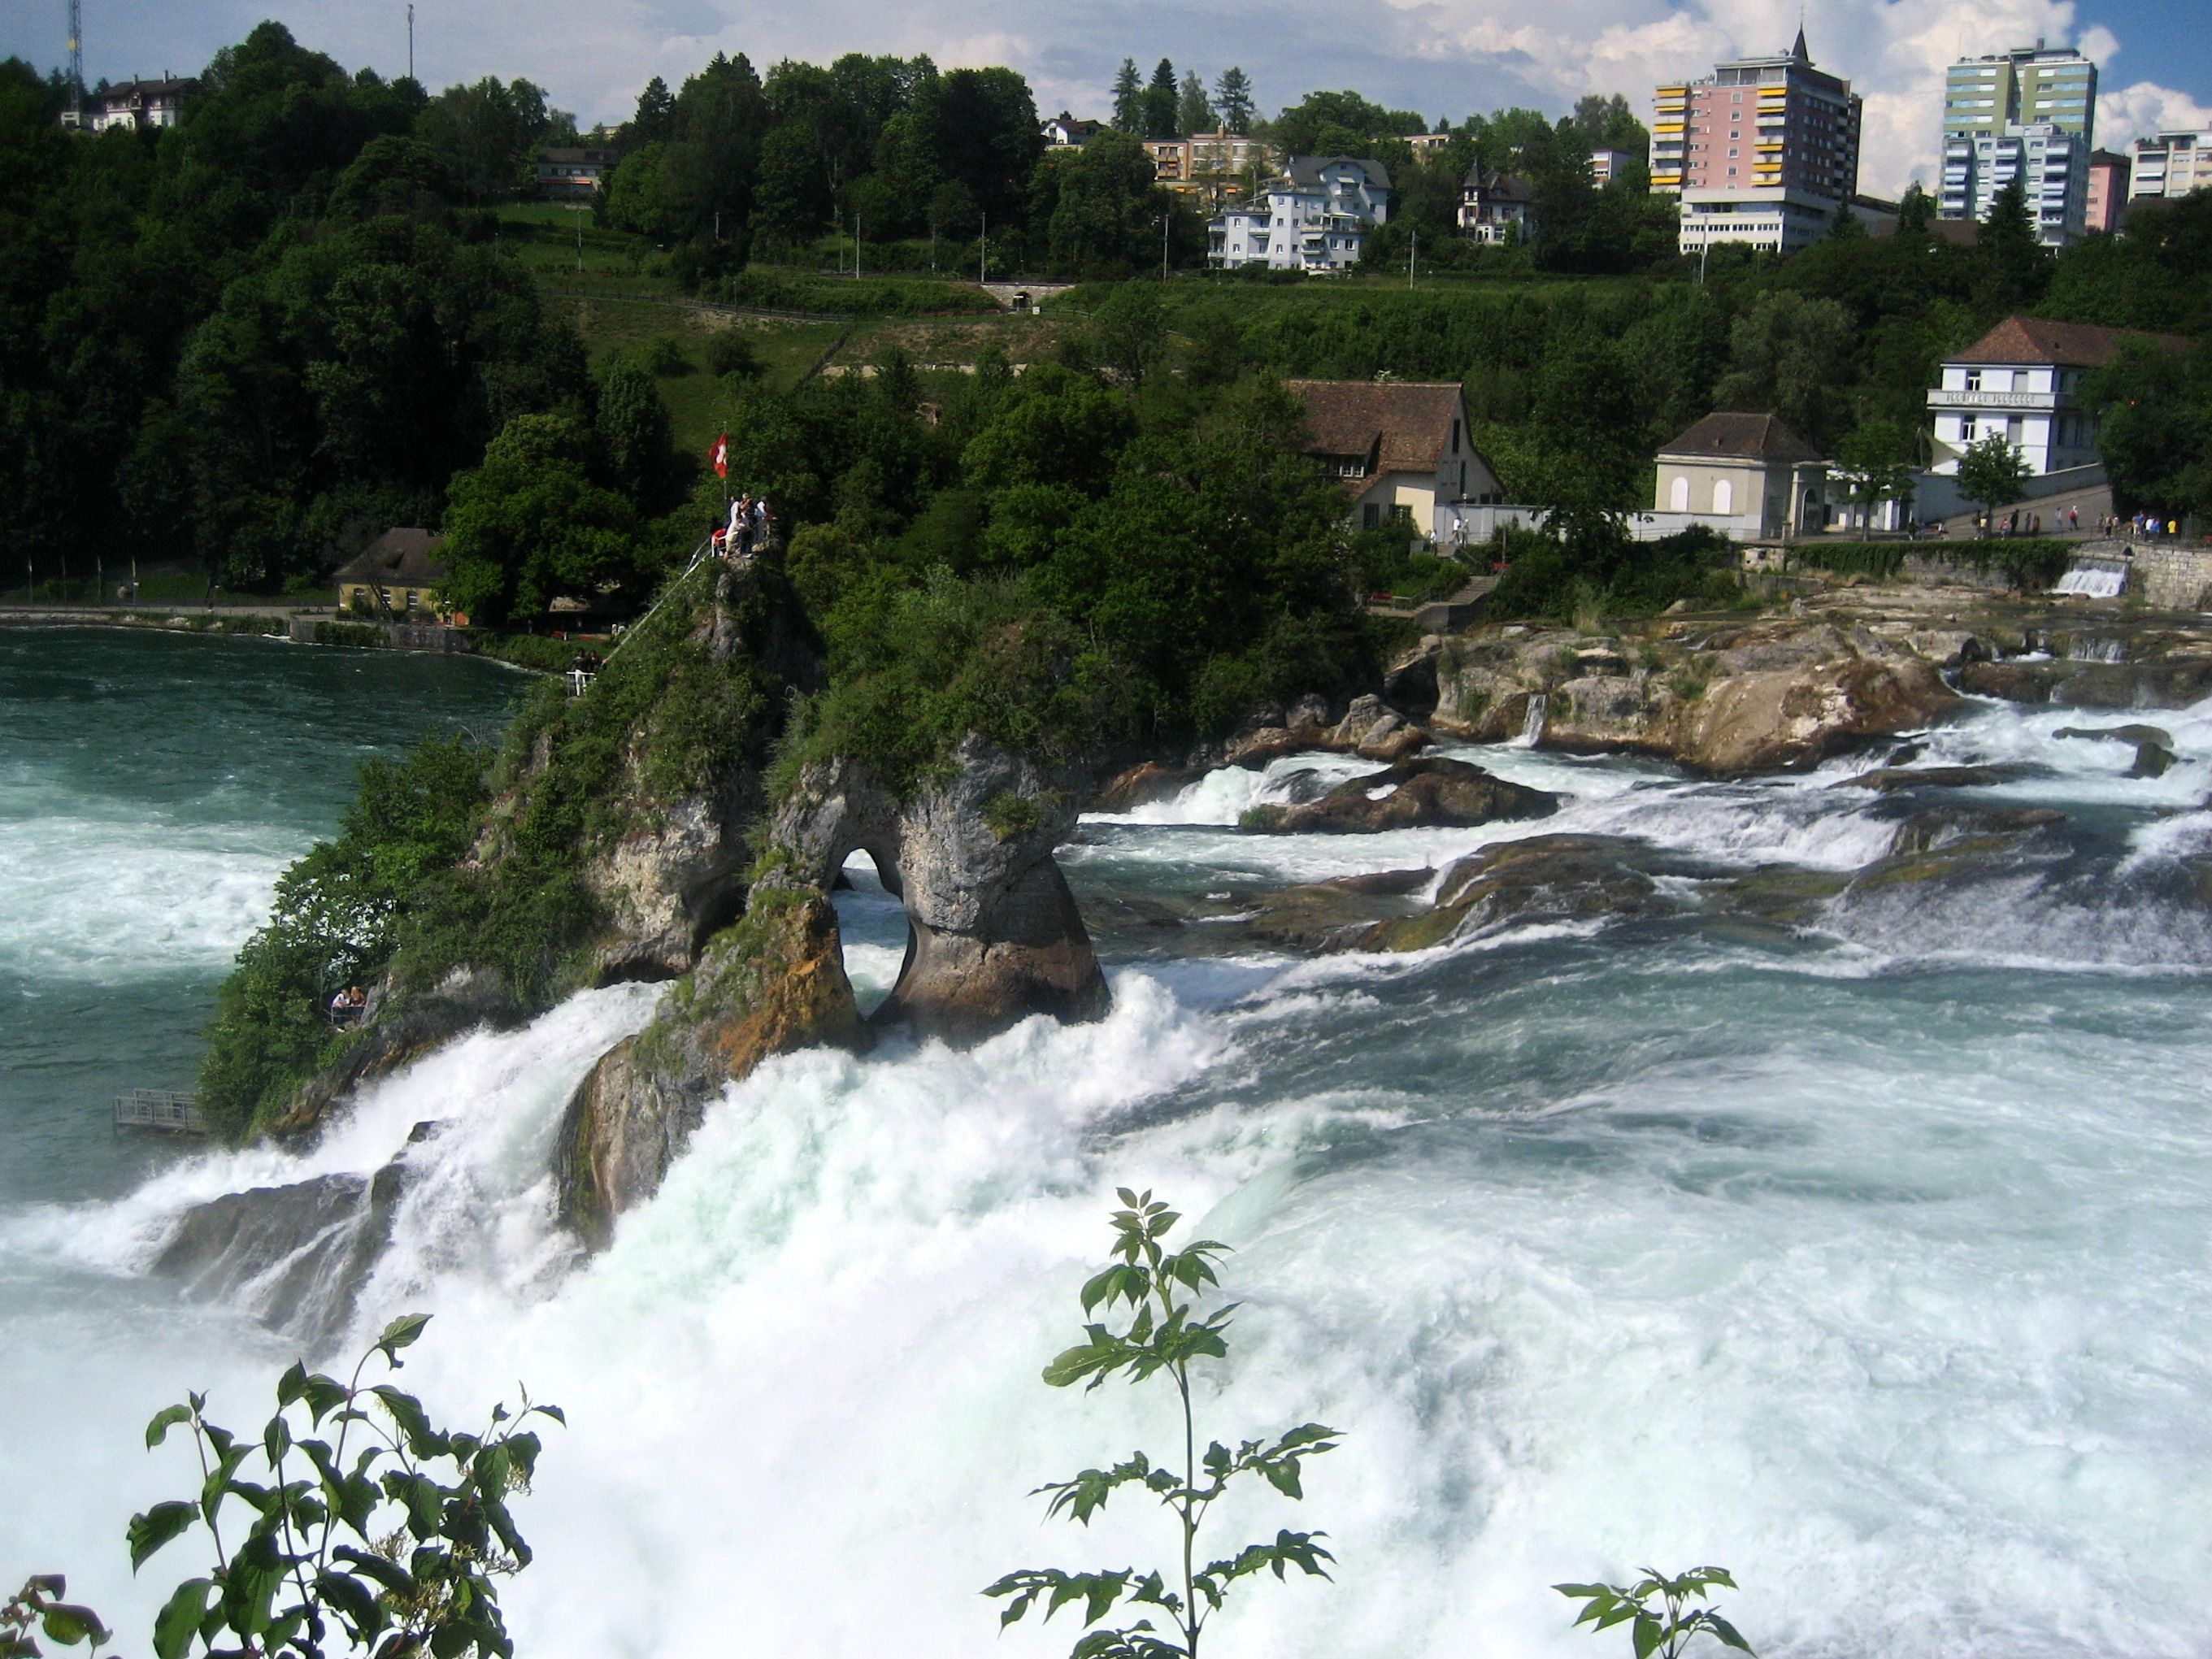 Rhine Falls Germany Places I Have Been Pinterest Europe - Swiss river to the rhine